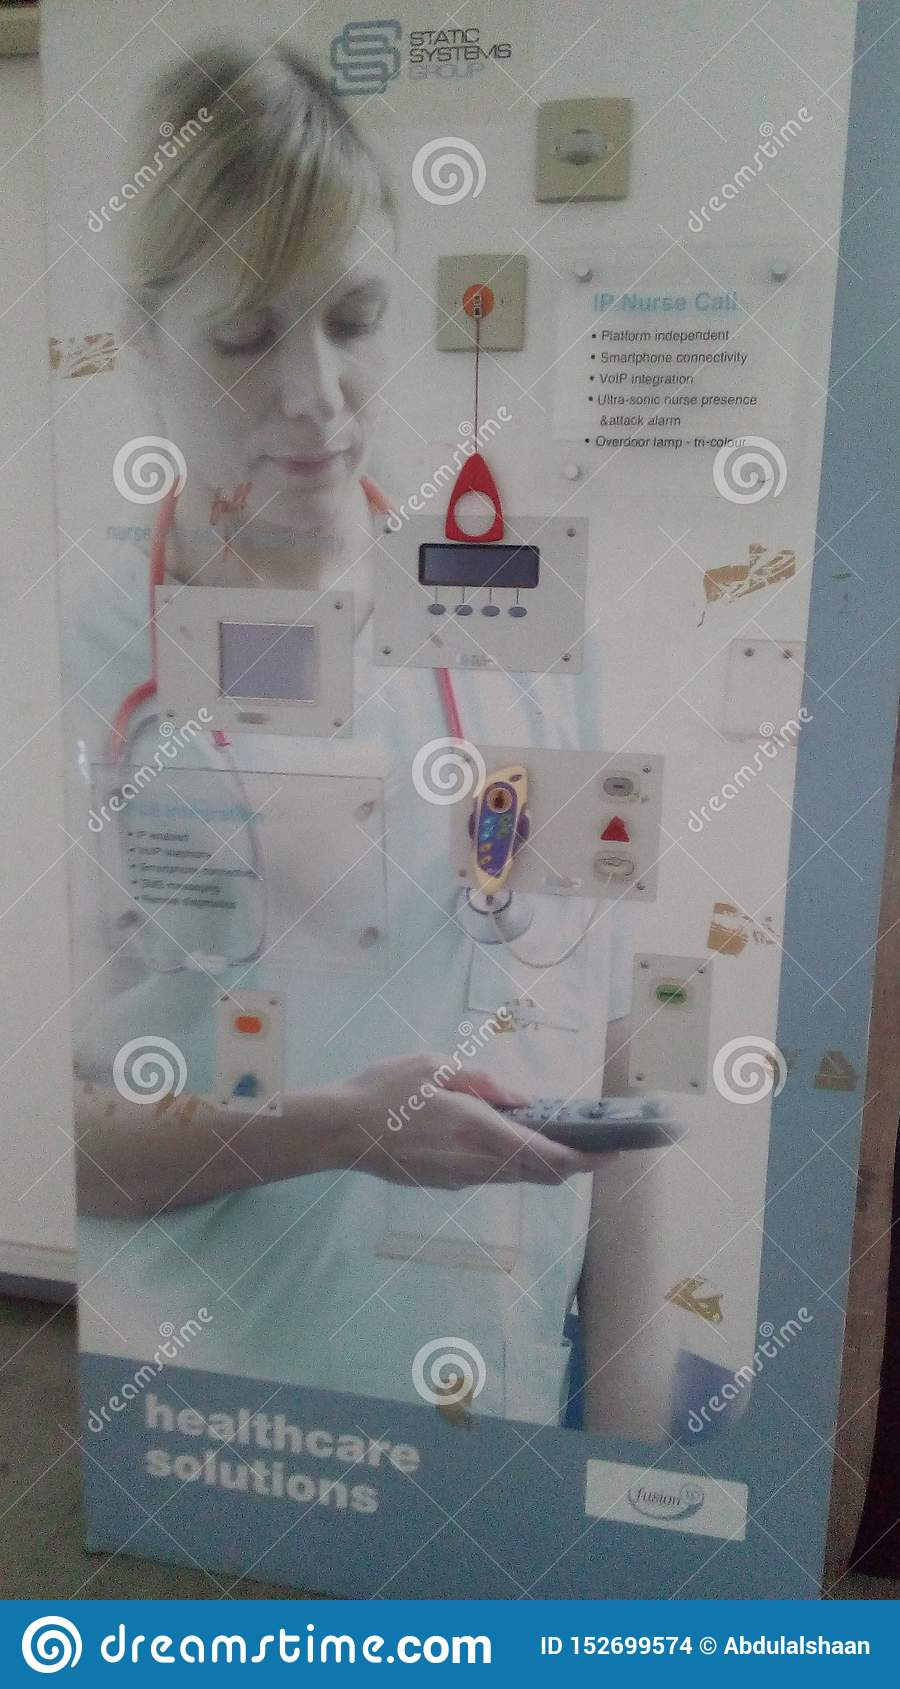 Hospital use better future touch